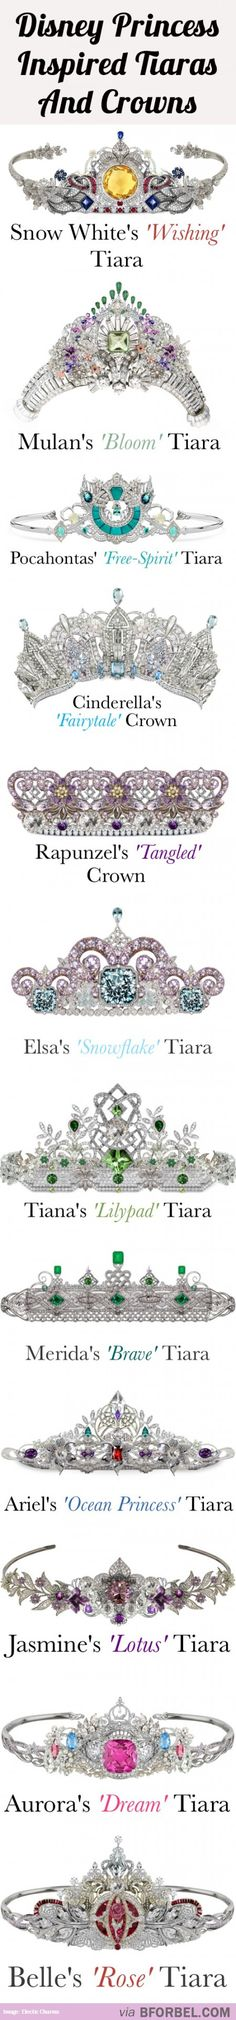 12 Disney Princess Tiaras And Crowns…All Set With Beautiful Diamonds, Gems Precious Stones. - I'll take the Cinderella, Rapunzel and of course Ariel tiara, please! Walt Disney, Disney Mode, Disney Fun, Disney Girls, Disney Style, Disney Magic, Disney Nerd, Disney And Dreamworks, Disney Pixar